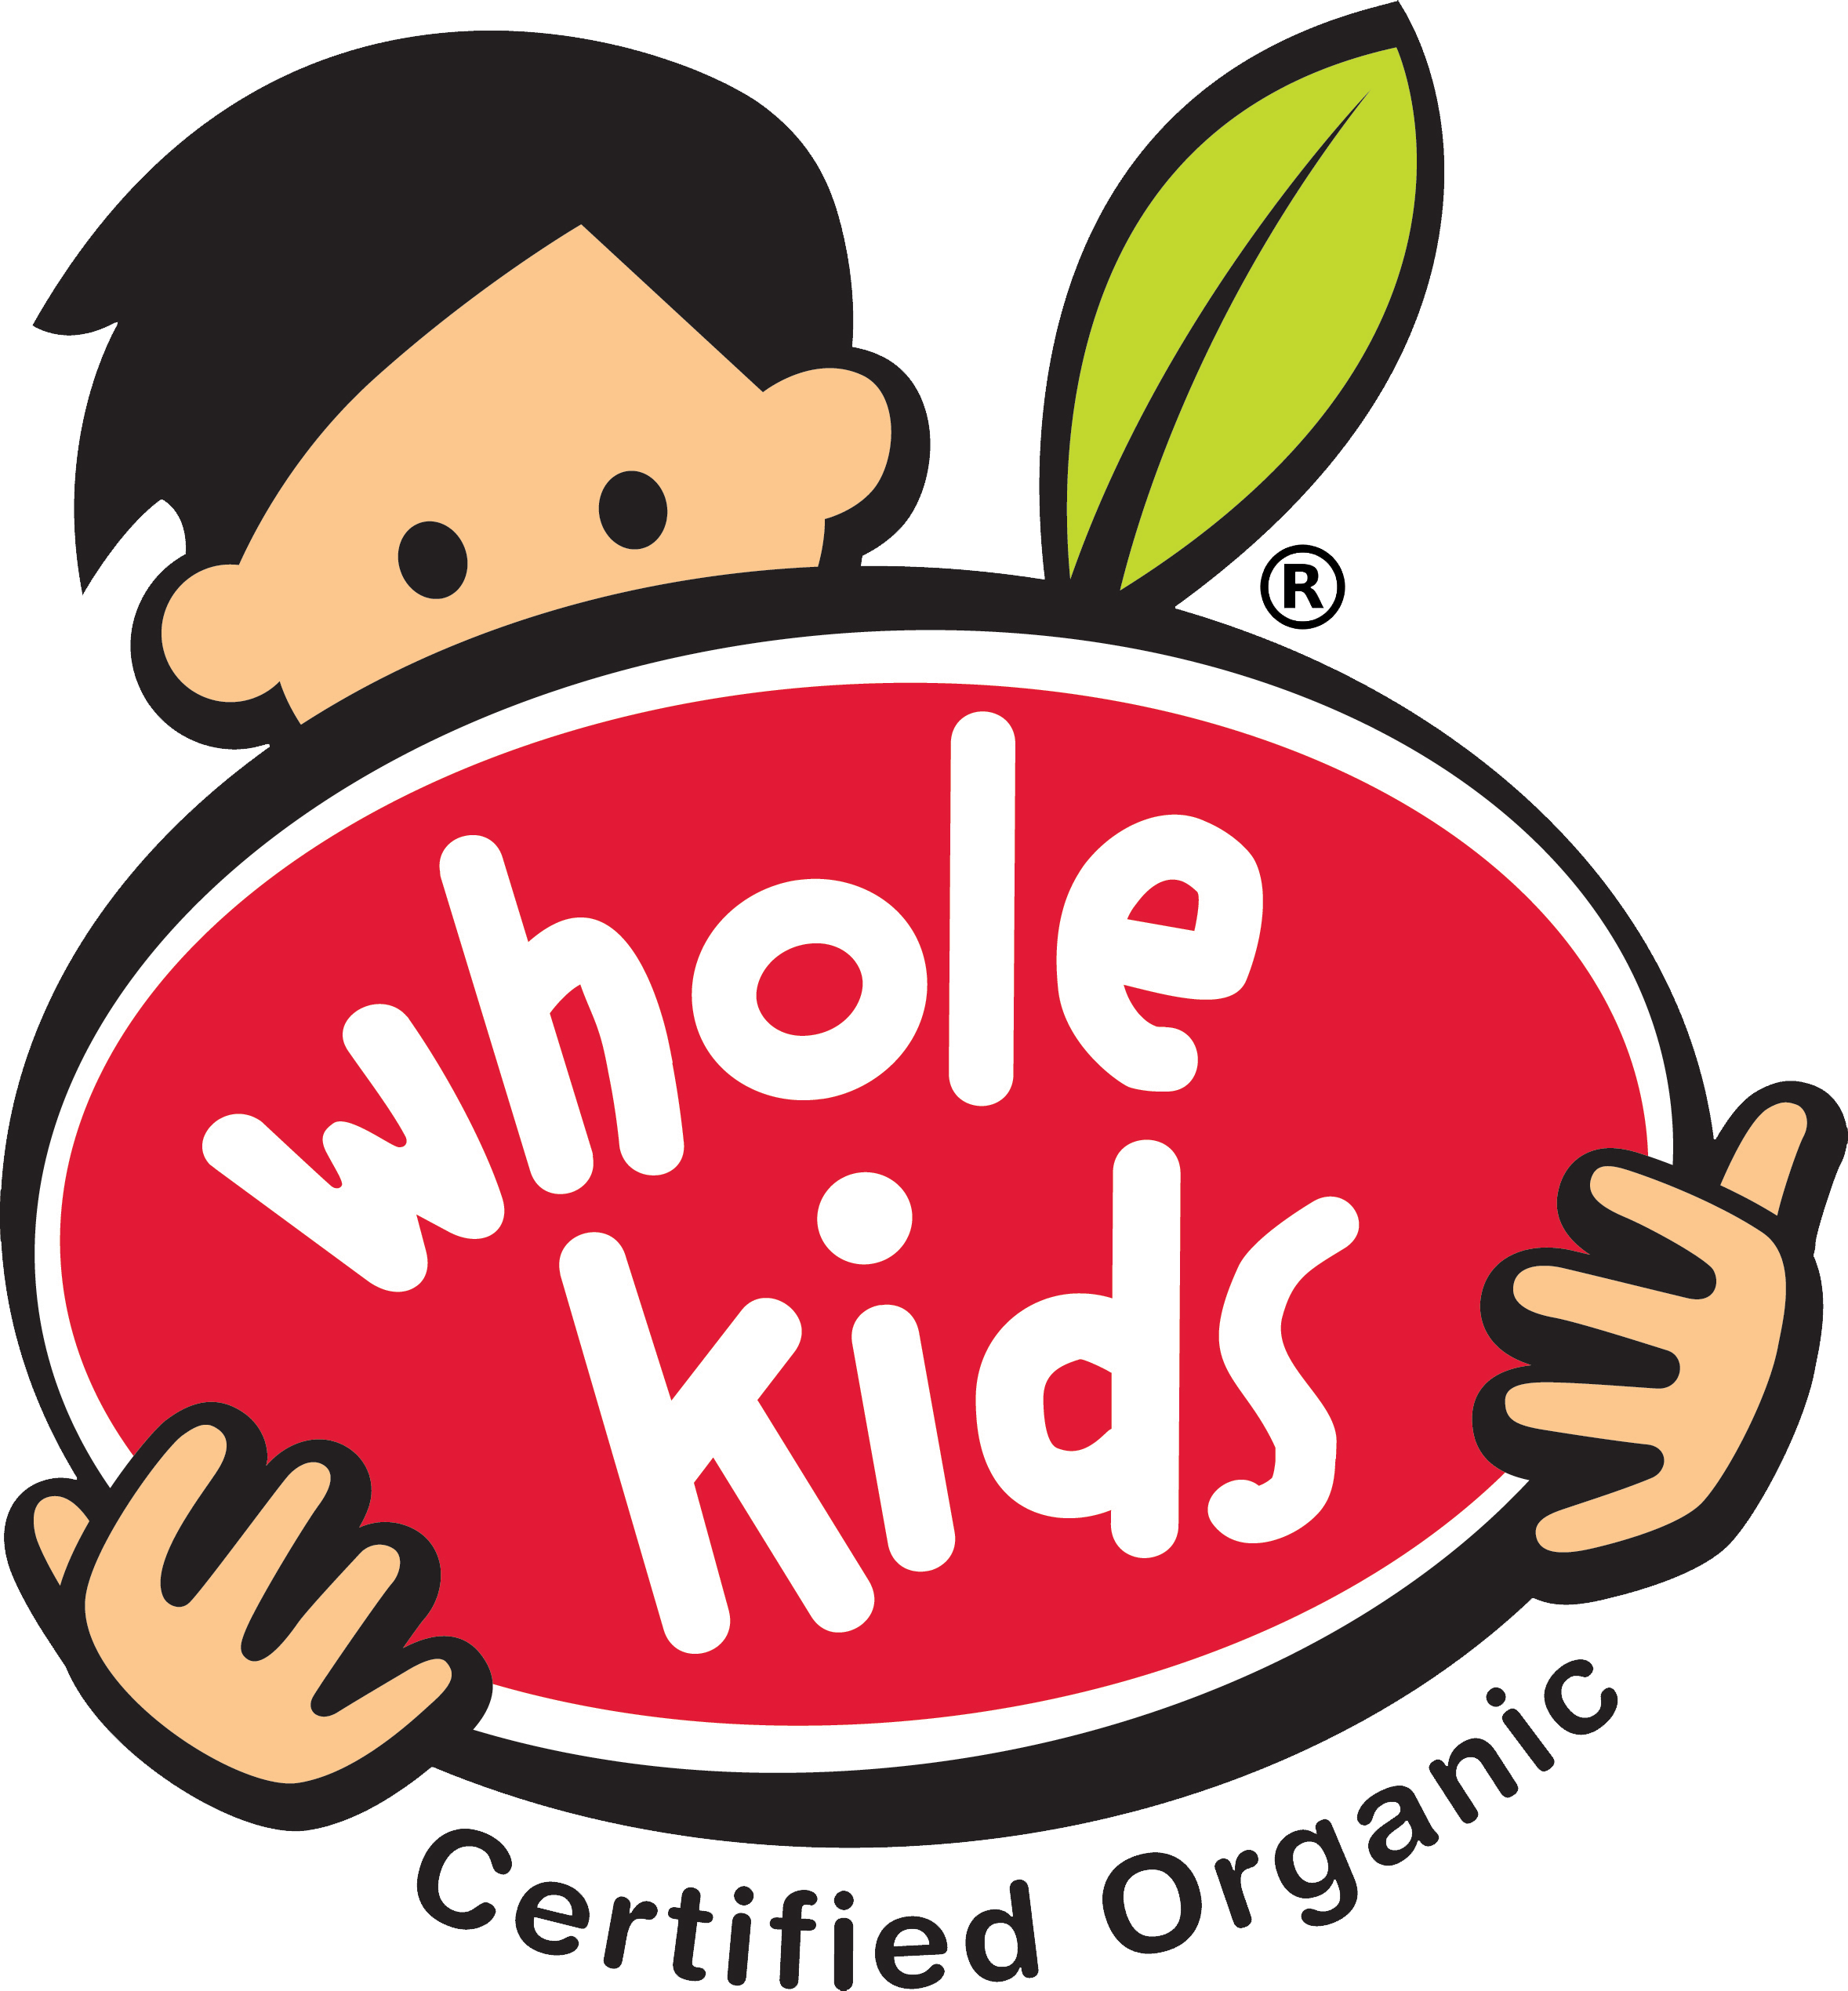 Whole-Kids-Hi-Res-Logo-Transparent-1